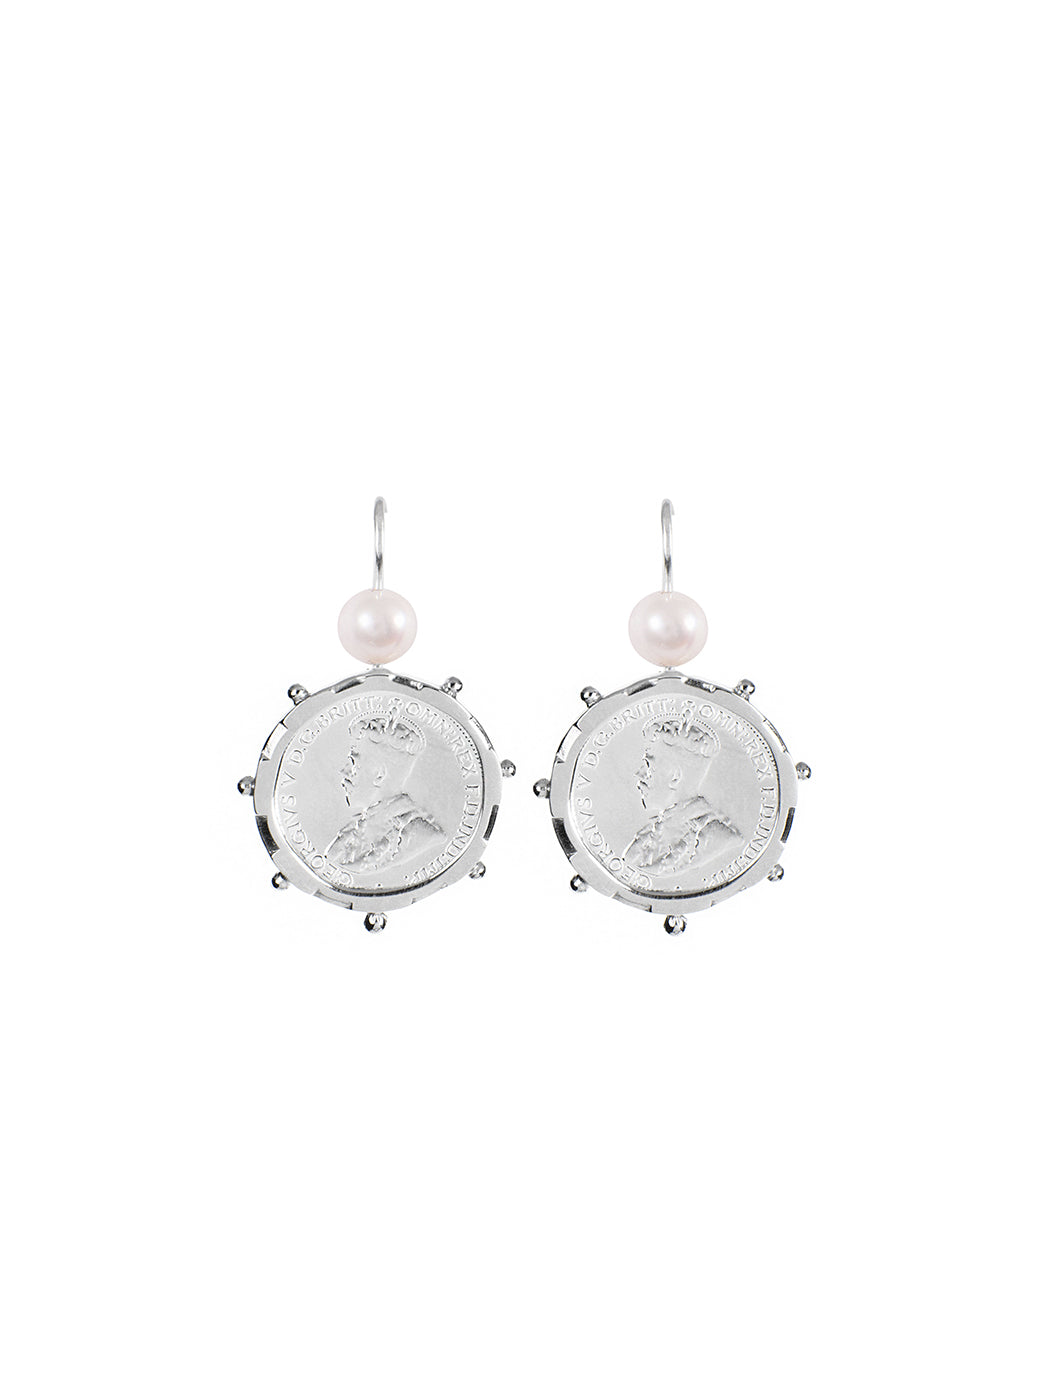 Fiorina Jewellery Silver Encased Coin 6P Earrings Pearl Highlights